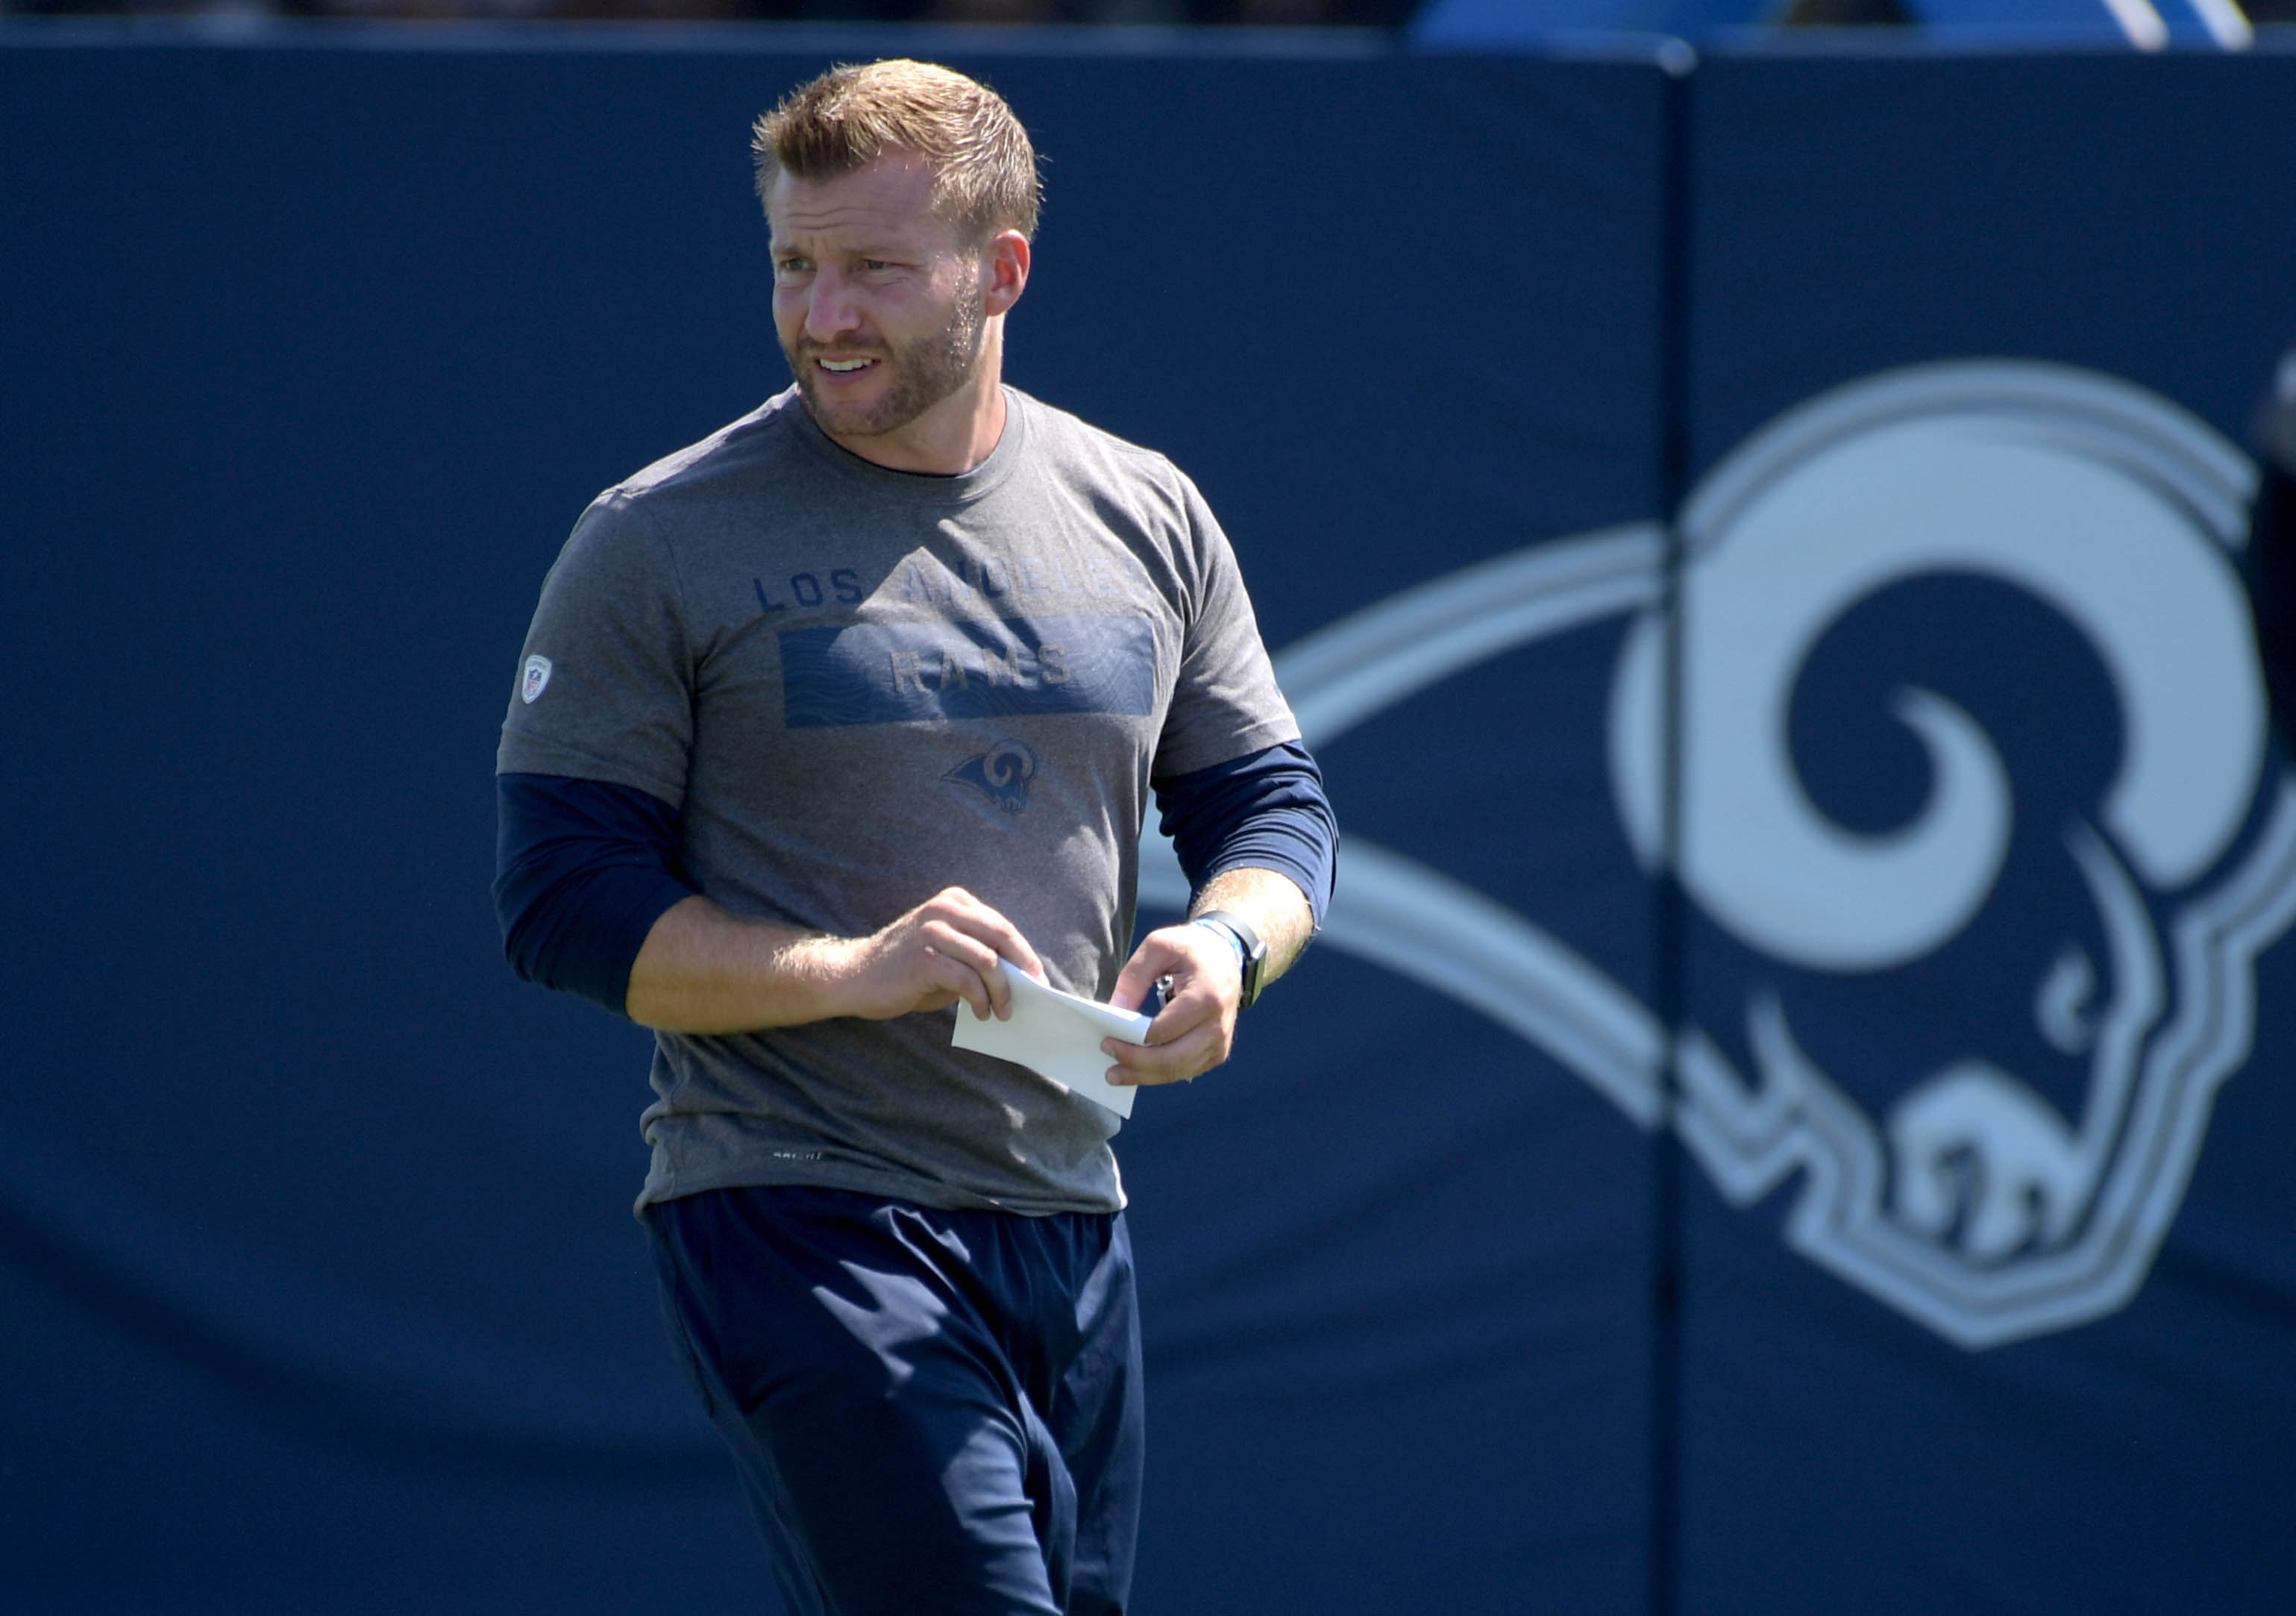 Los Angeles Rams coach Sean McVay during training camp, July 27, 2018.